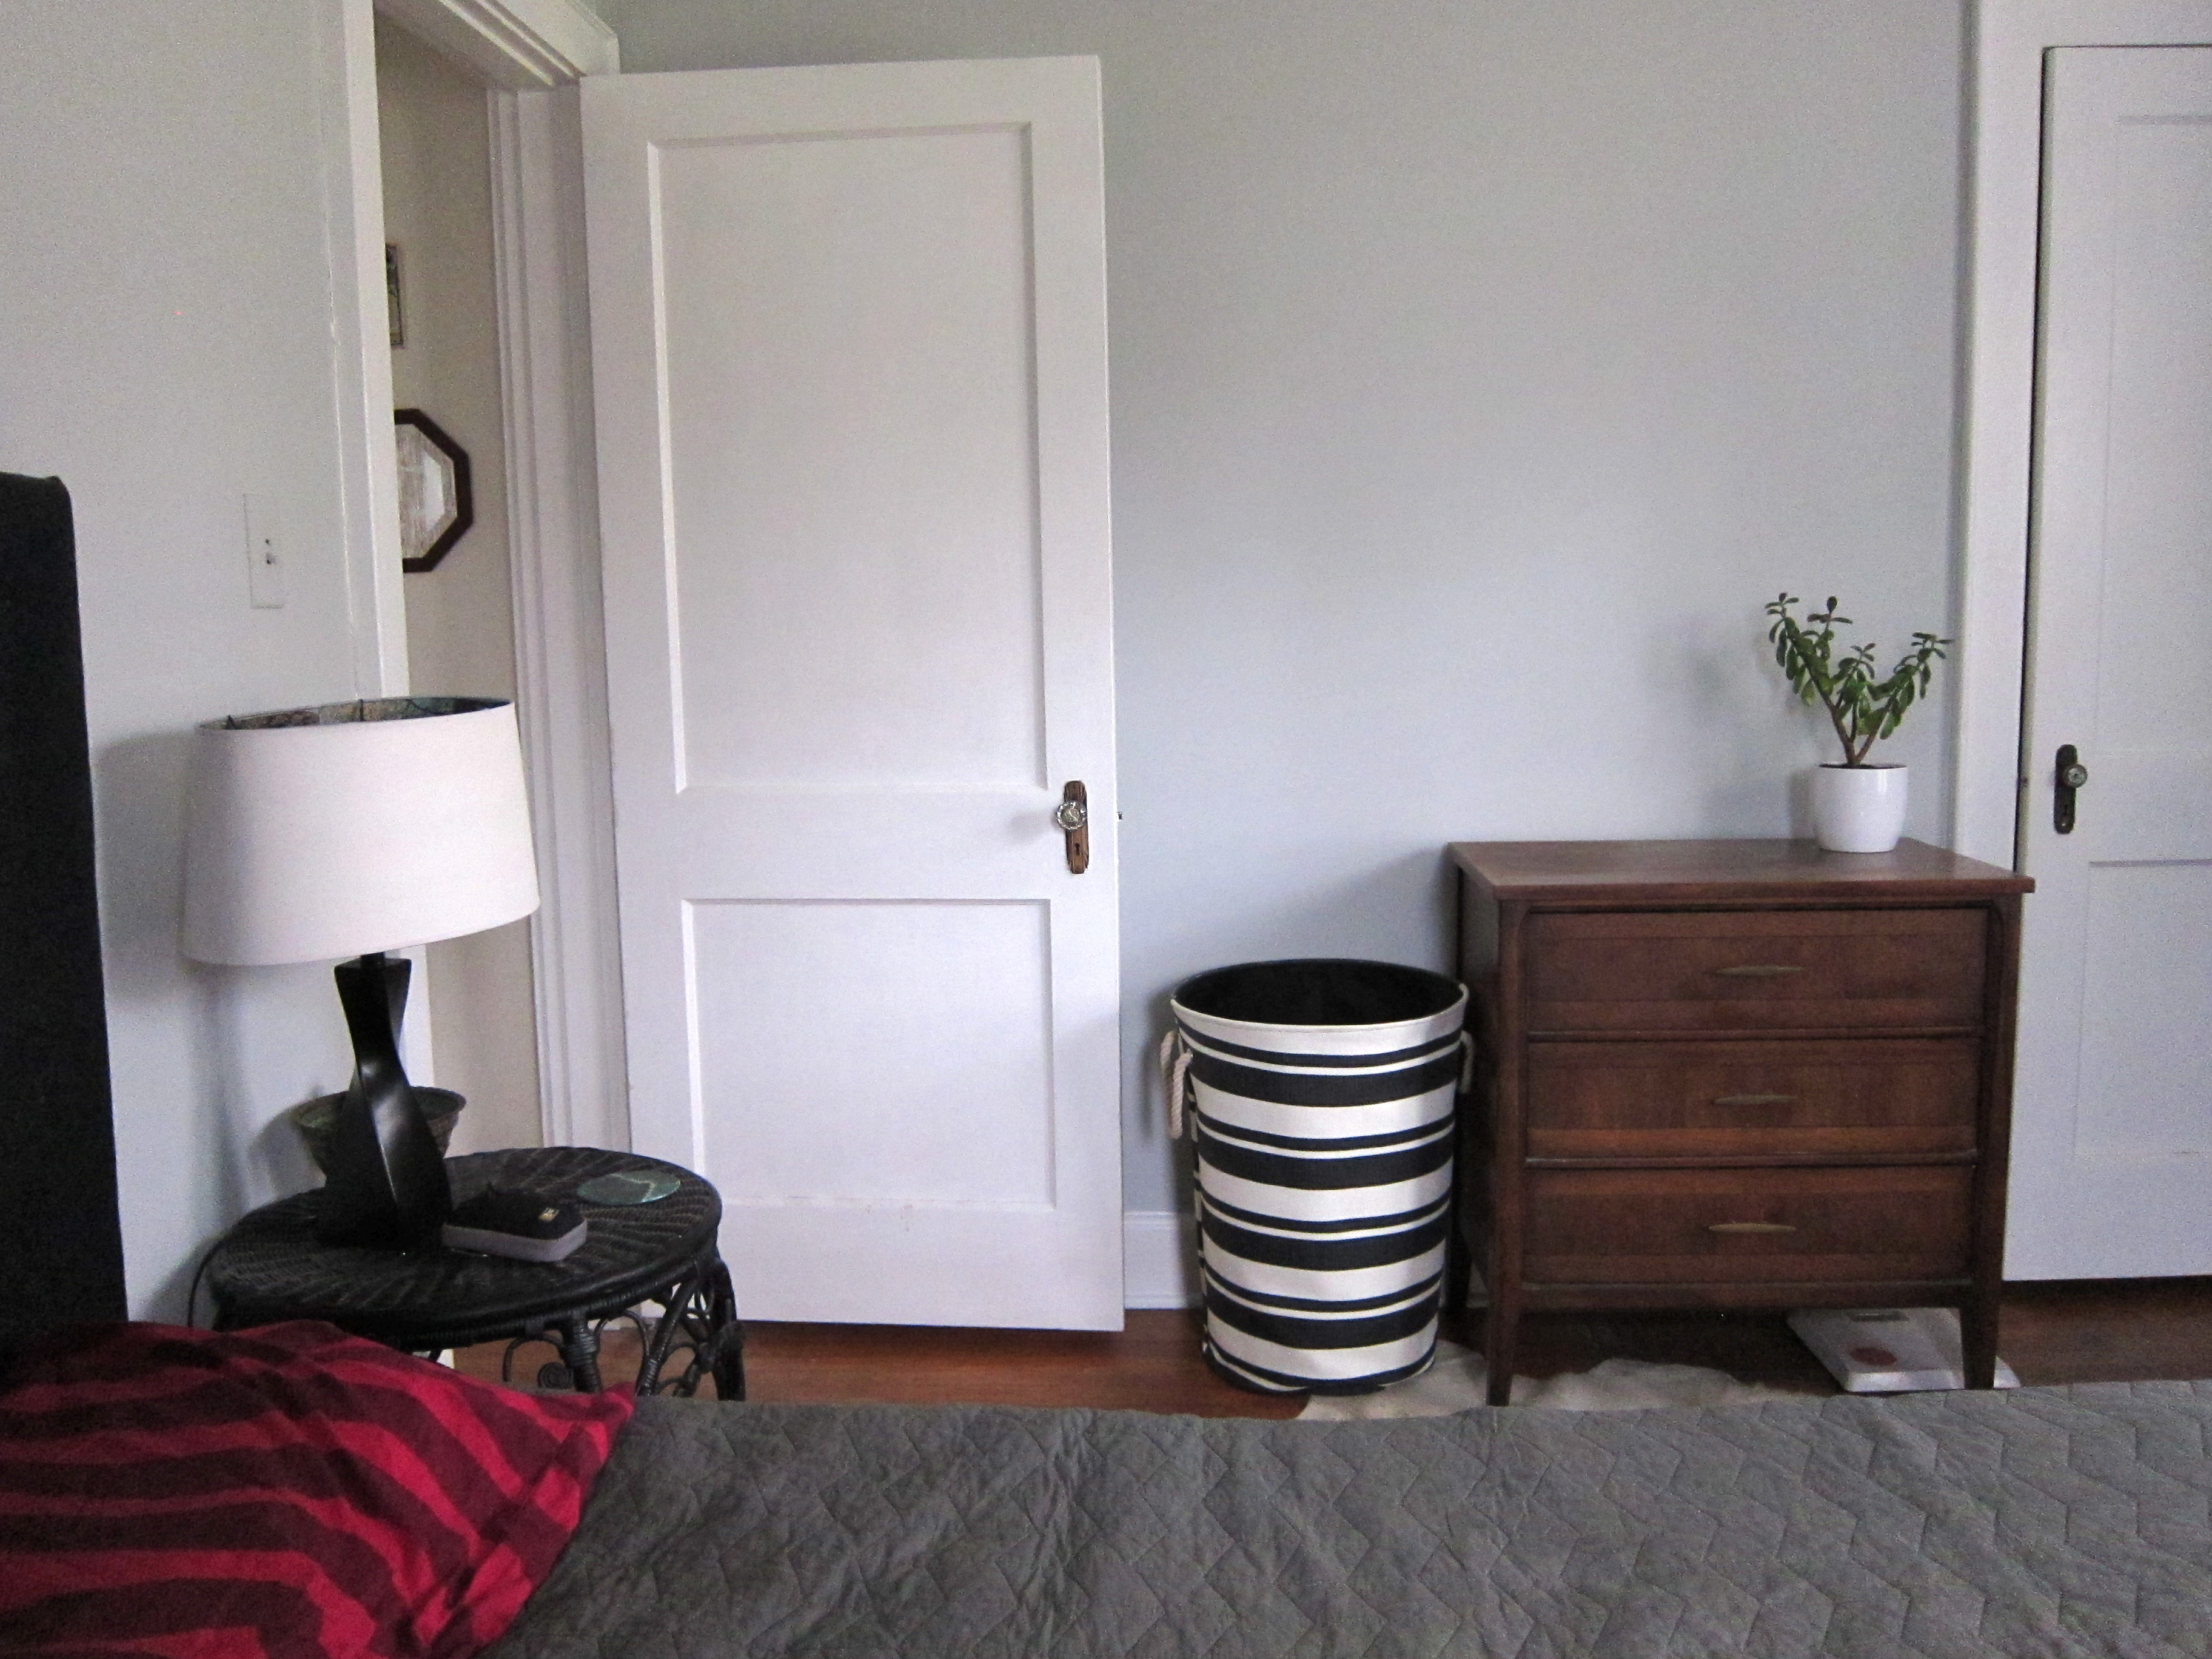 black and white laundry basket. Bedroom Updates   escape from bk